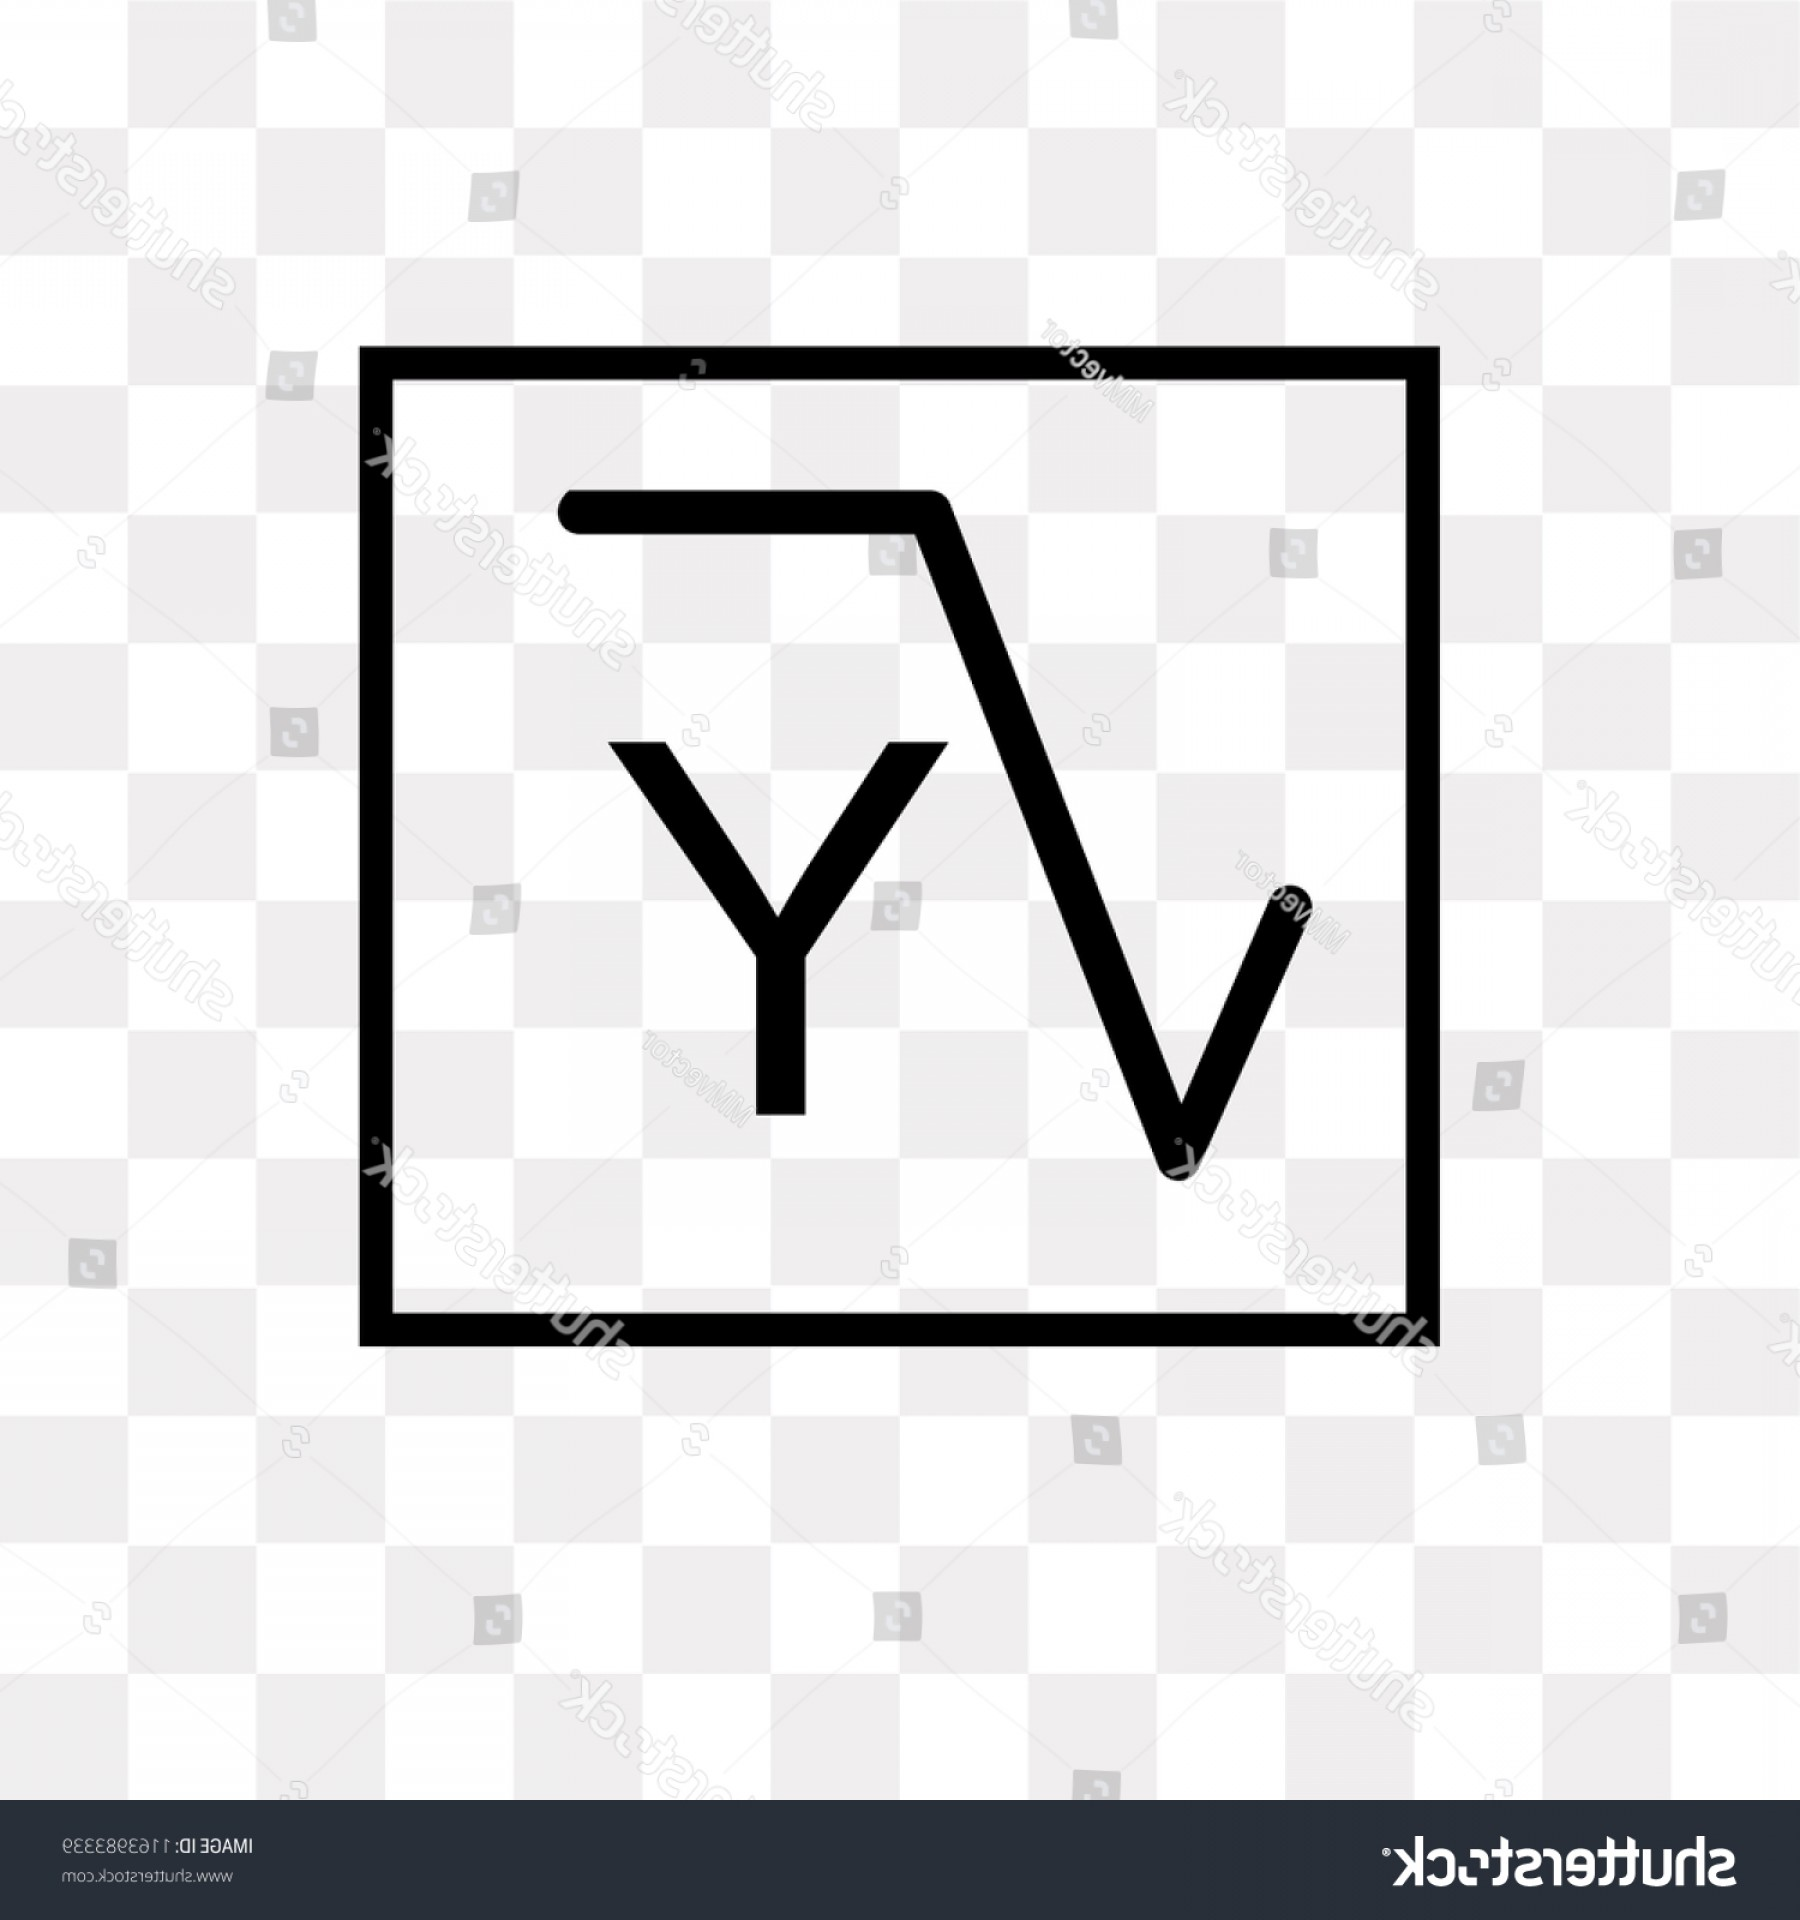 Transpearnt Vector Class: Square Root Class Vector Icon Isolated